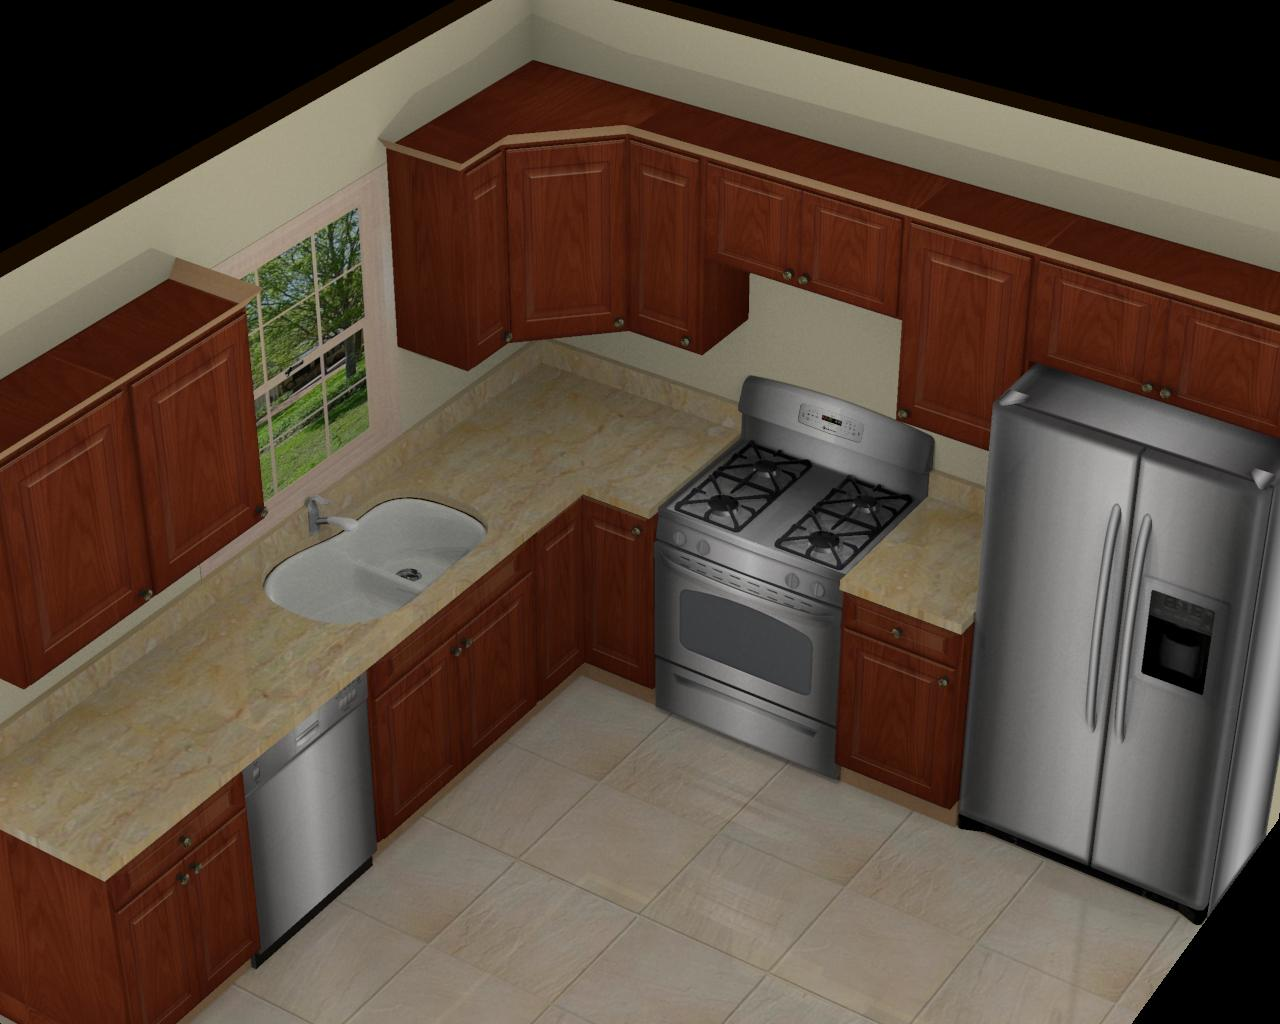 Pin 10x10 kitchen layout image search results on pinterest for 10x10 kitchen layout ideas